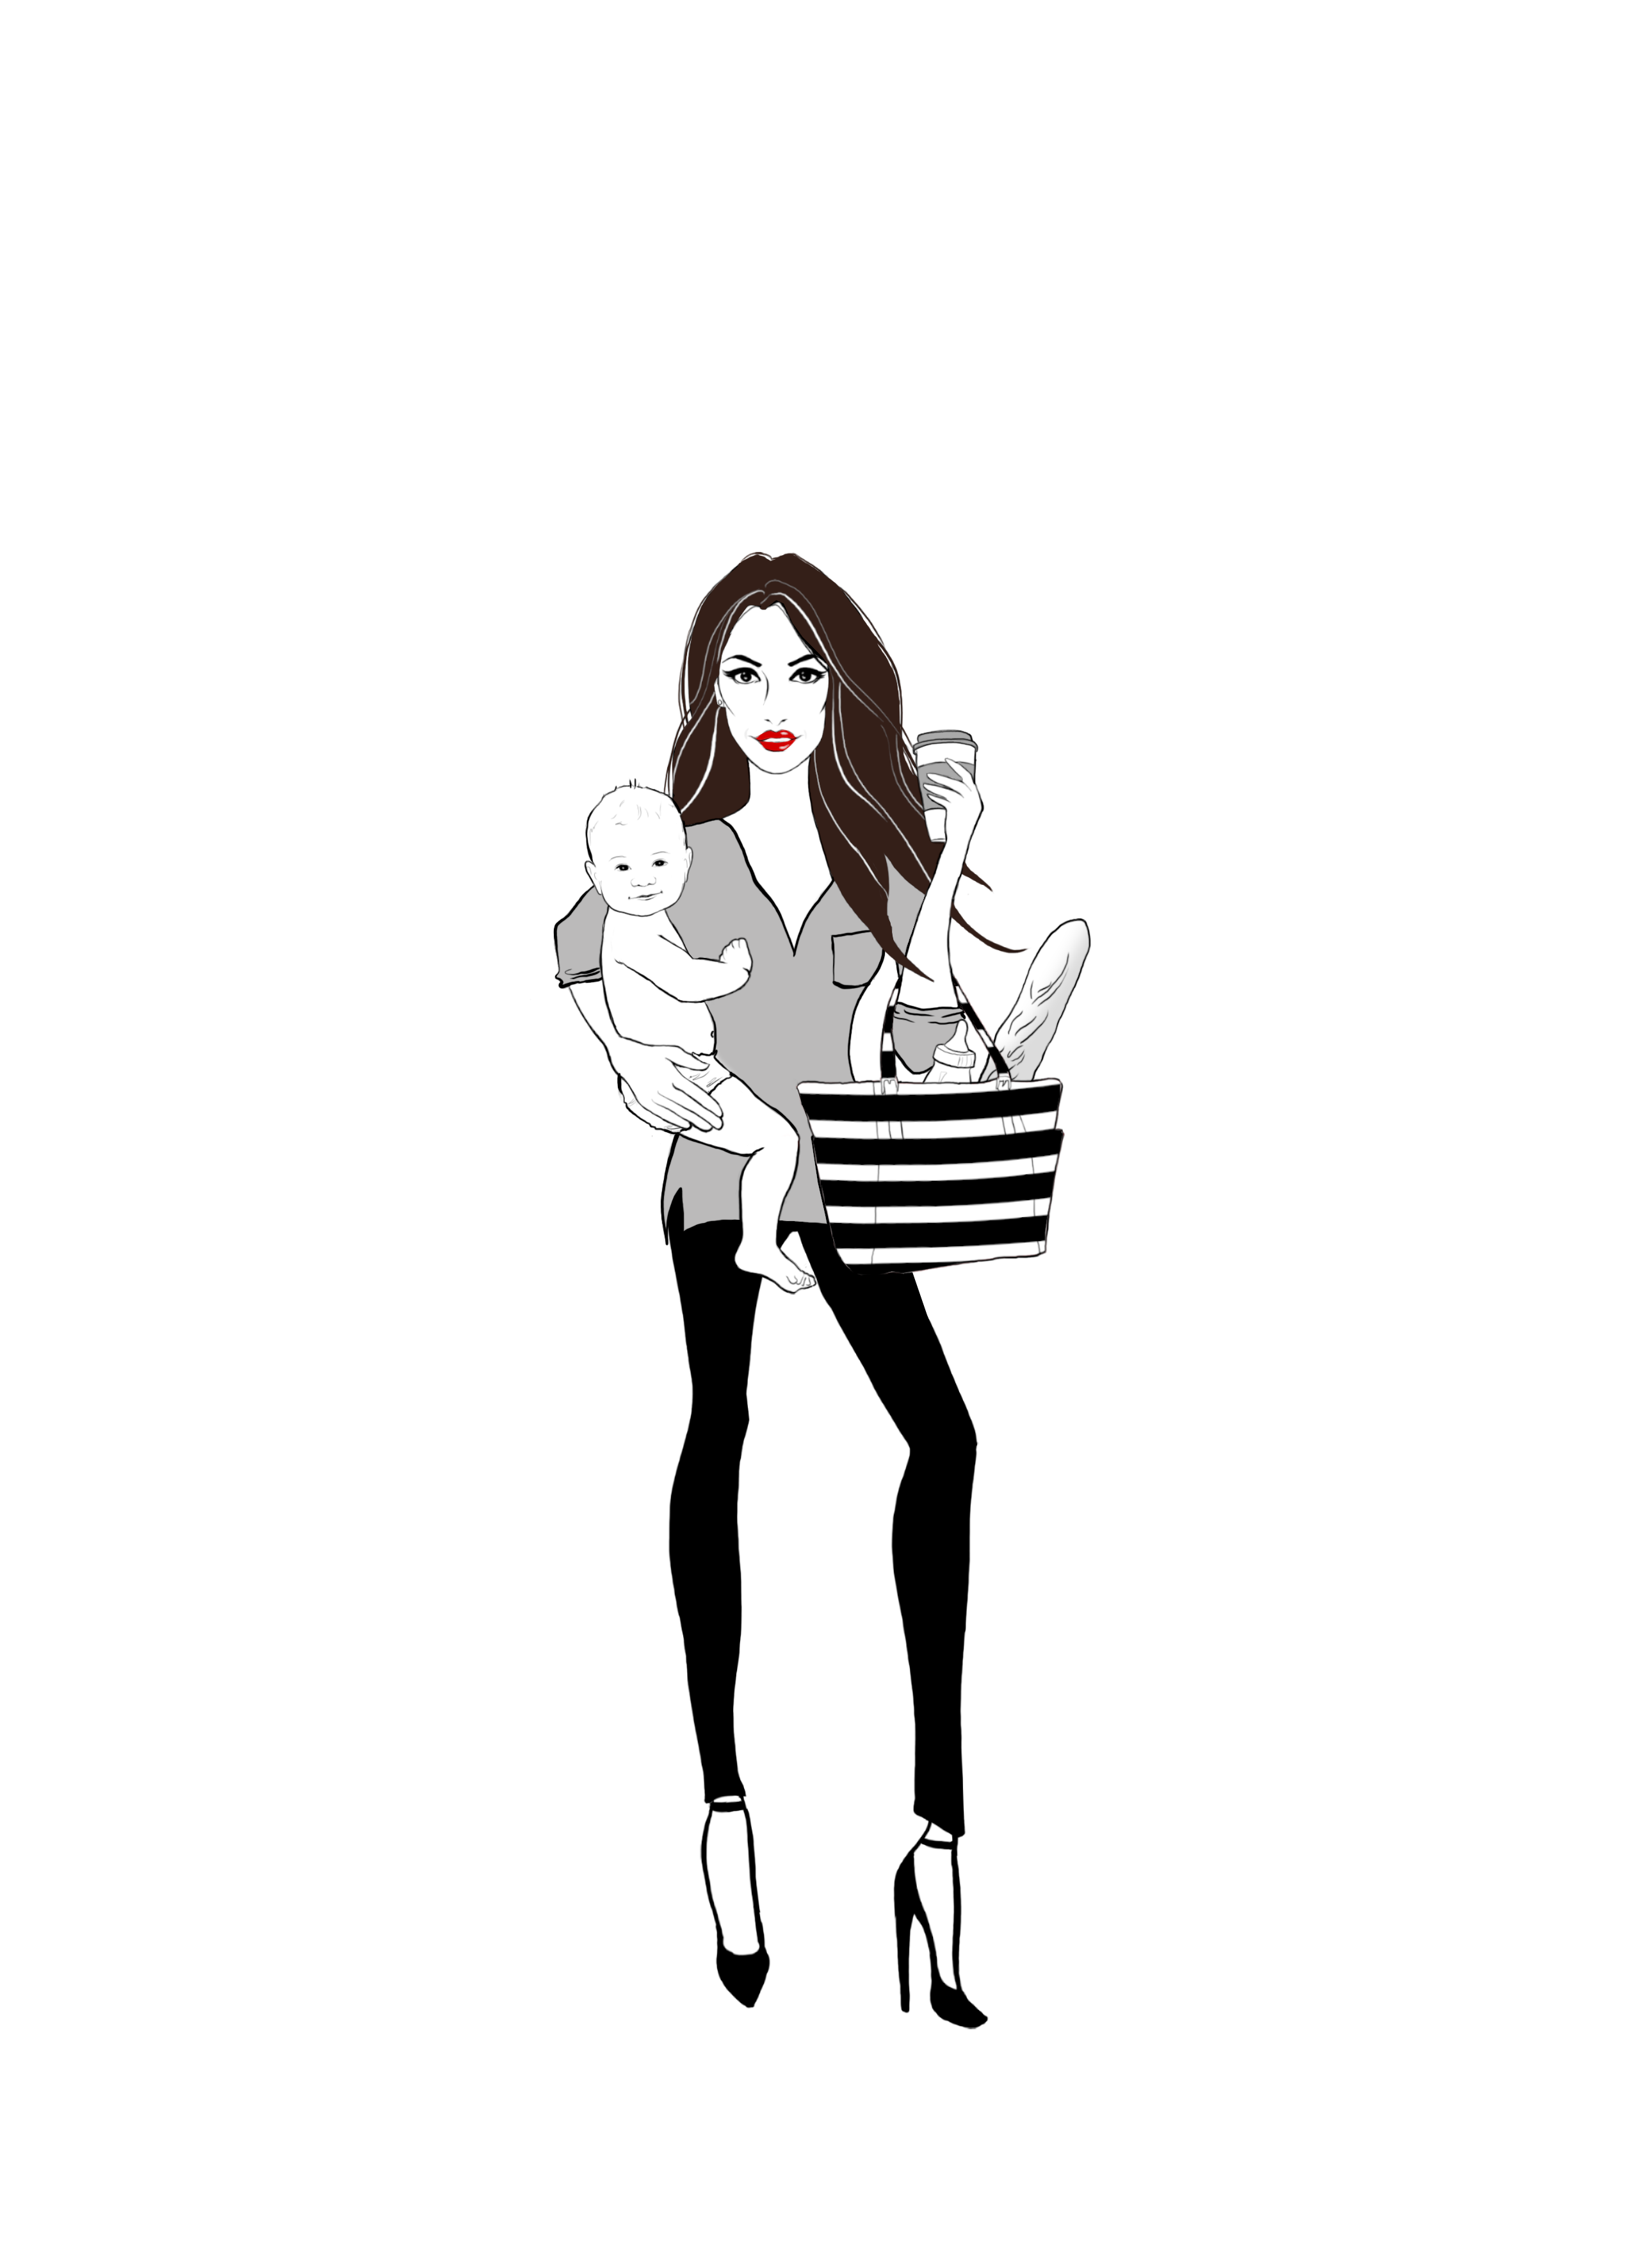 Fashionista drawing fancy. Baby clothing products travel